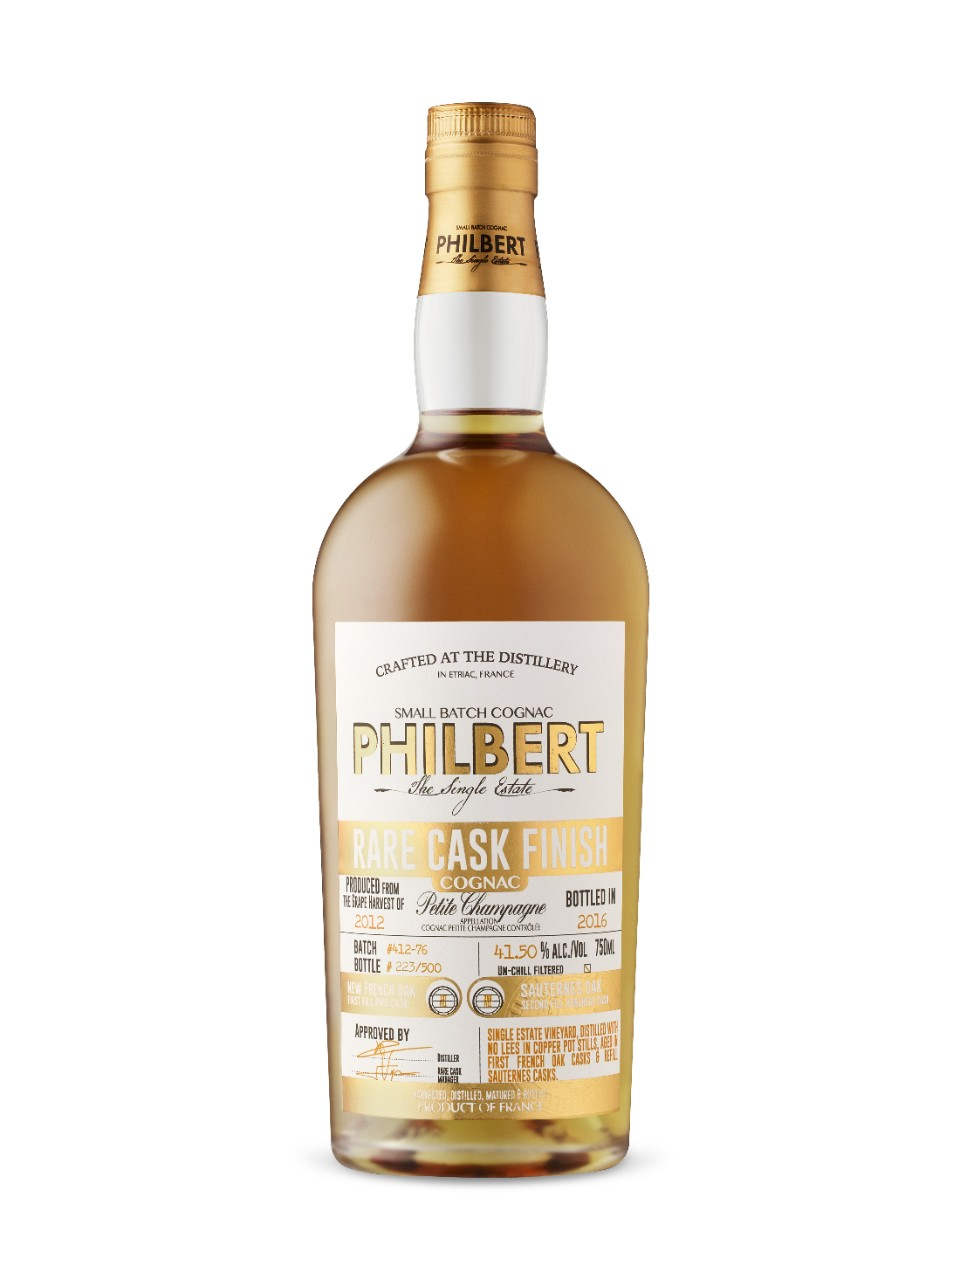 Image for Philbert Vintage Cognac Petite Champagne from LCBO